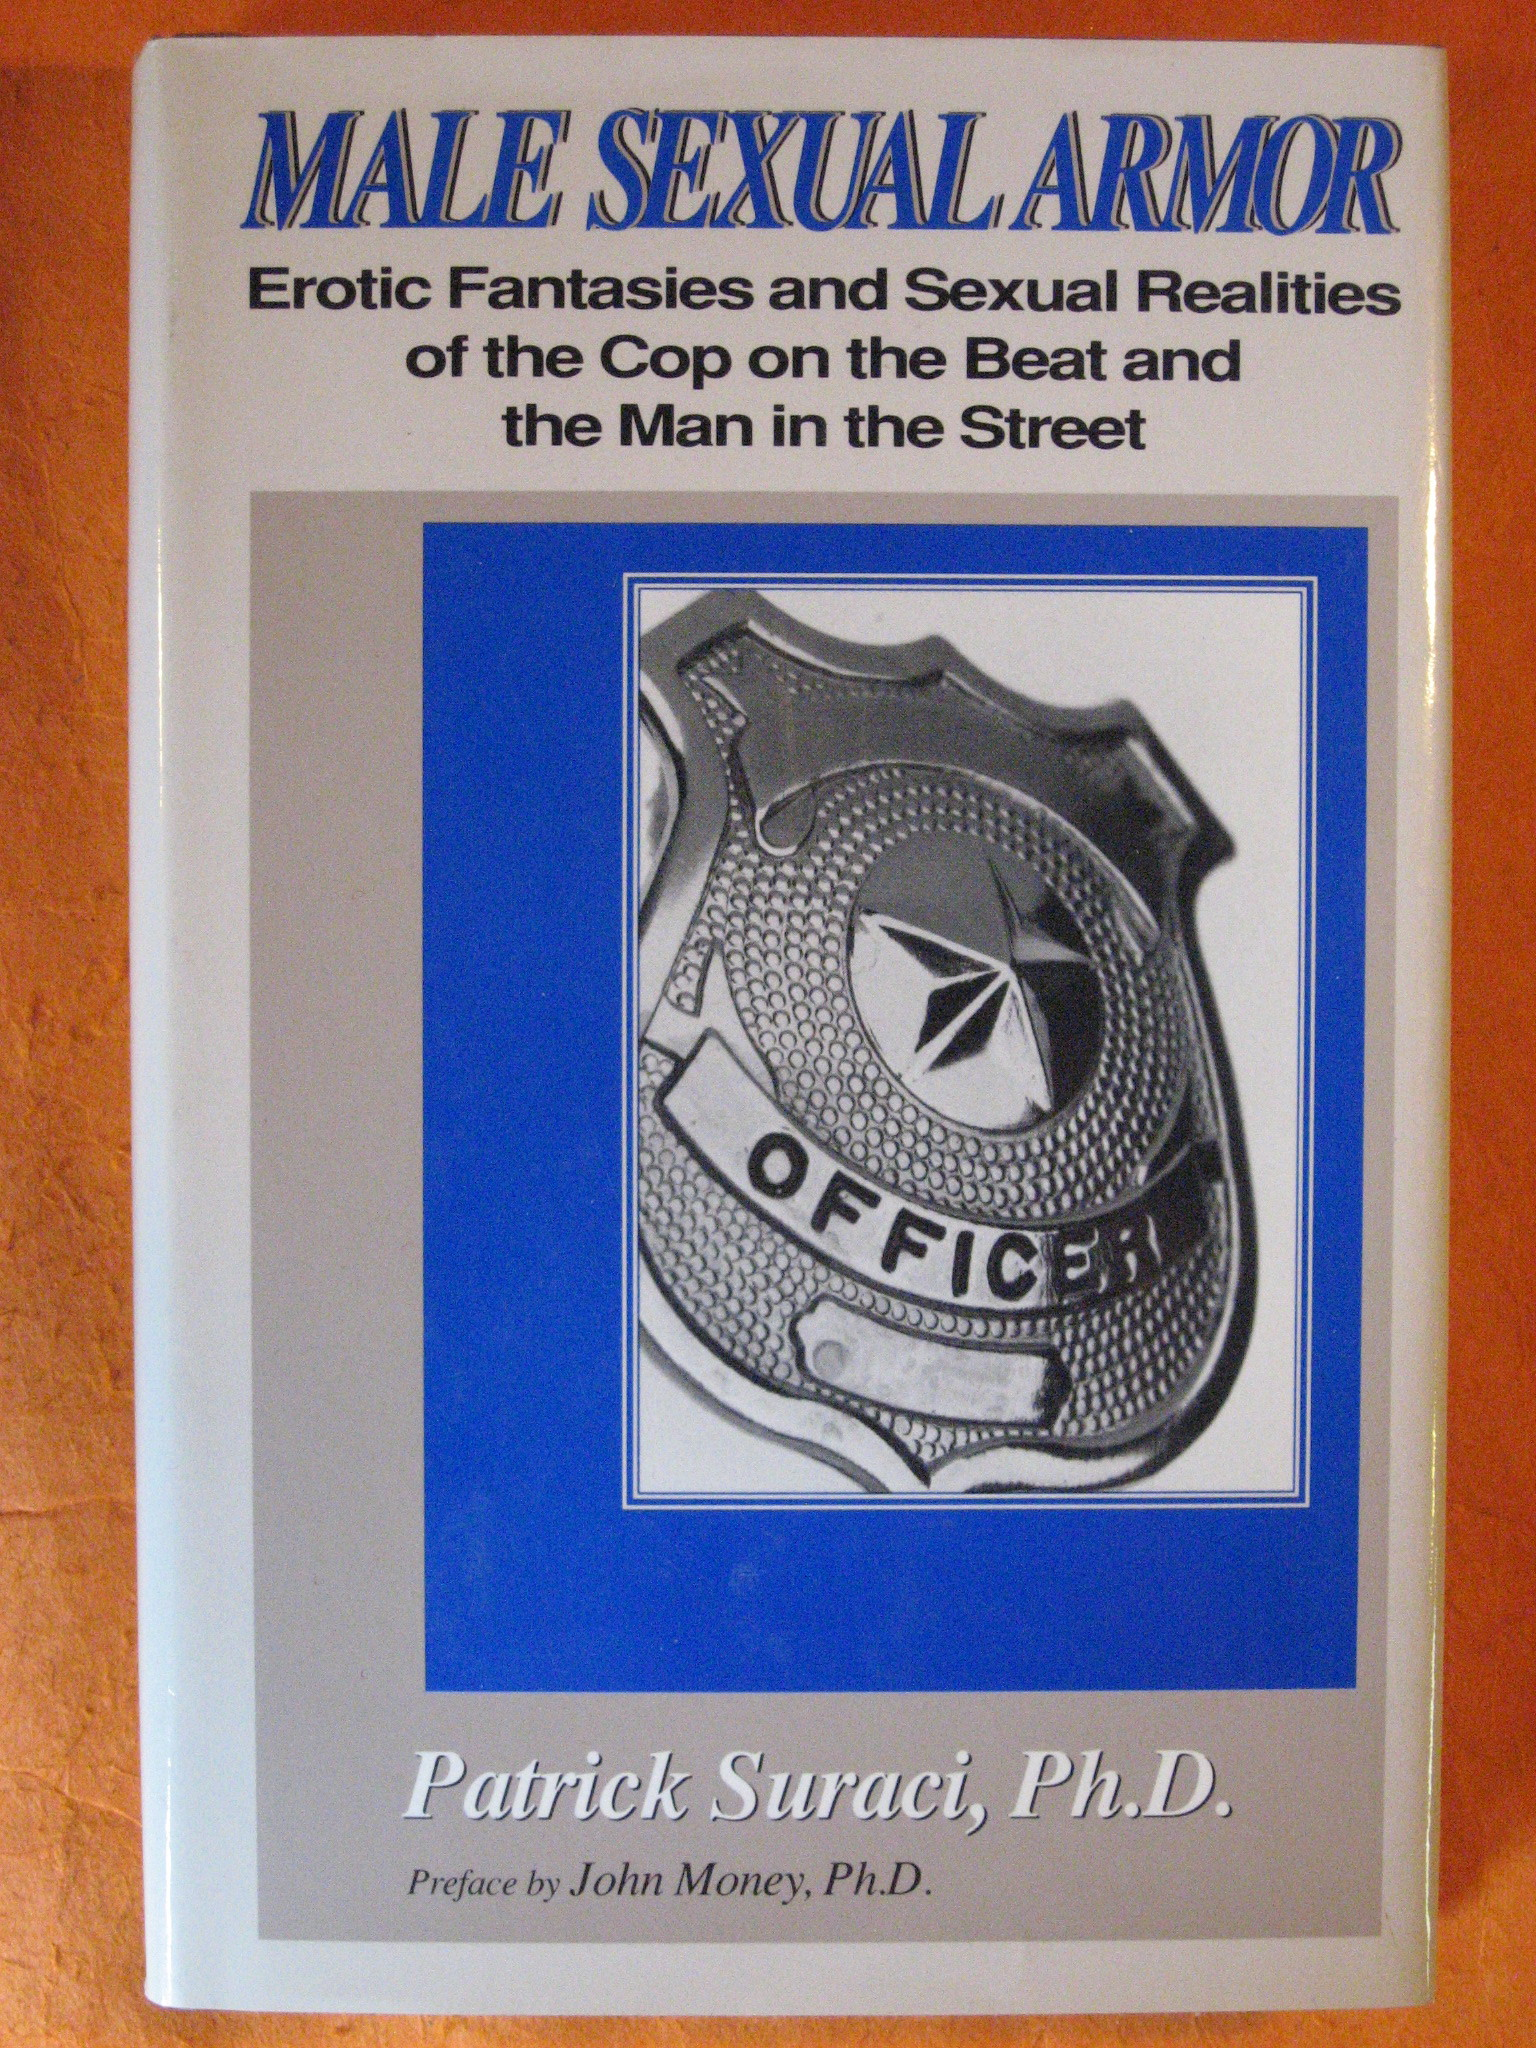 Male Sexual Armor: Erotic Fantasies and Sexual Realities of the Cop on the Beat and the Man in the Street, Suraci, Patrick